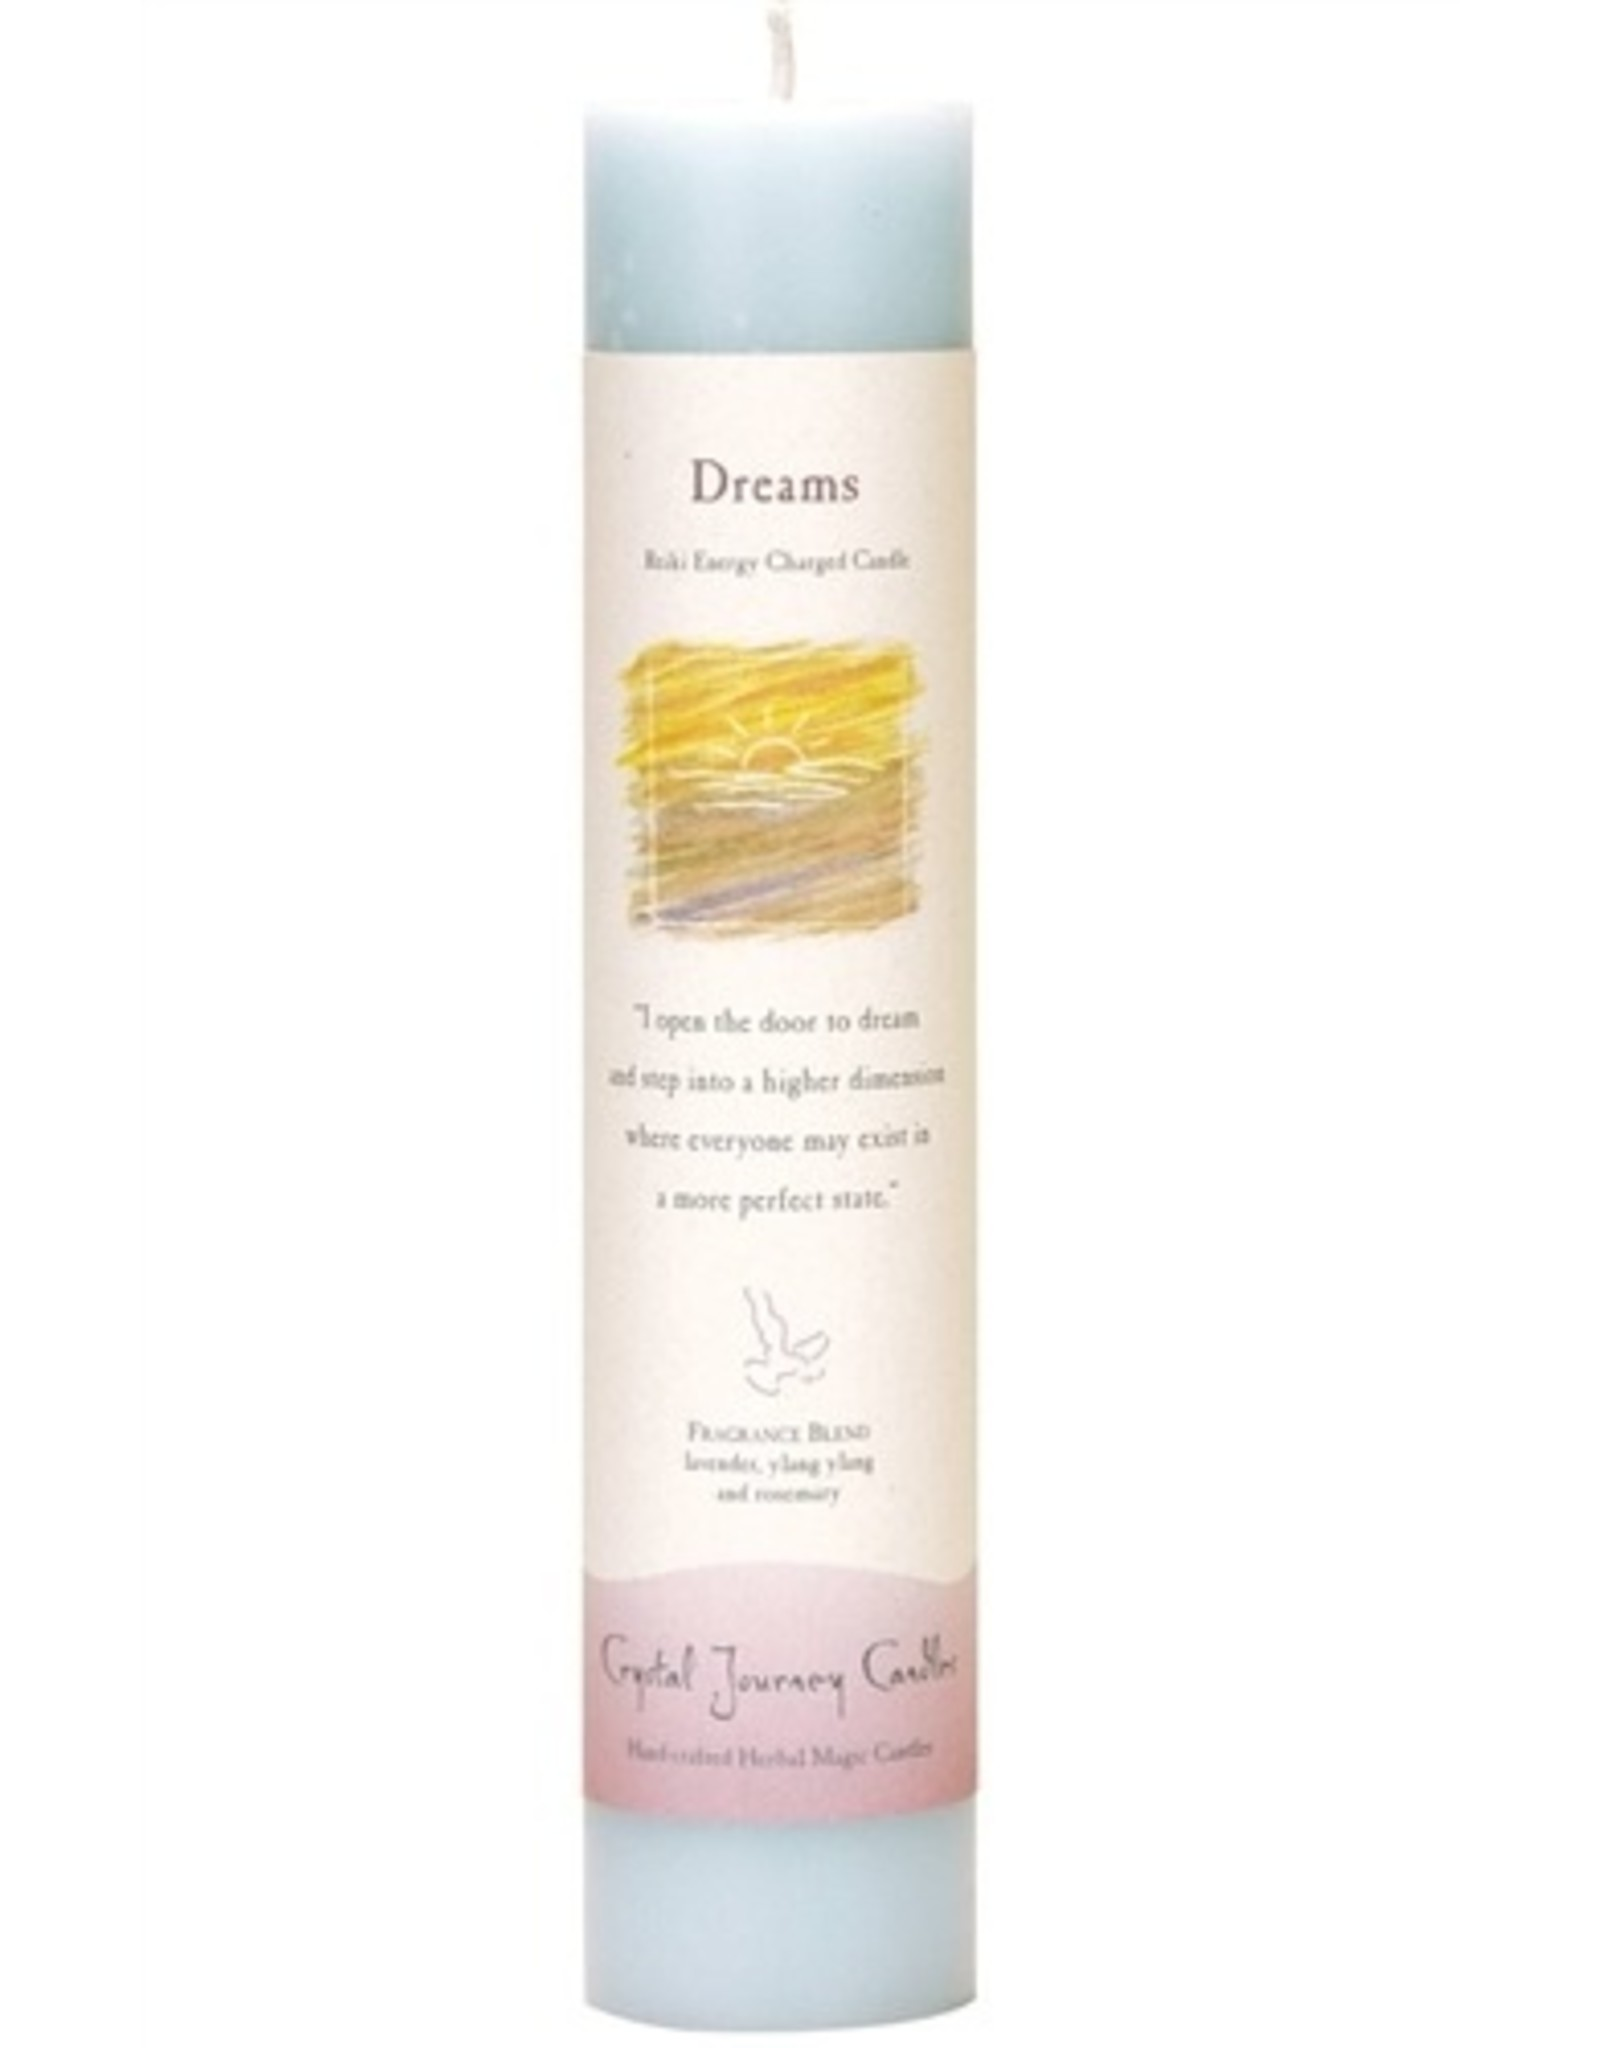 Crystal Journey Dreams Magic Pillar Candle